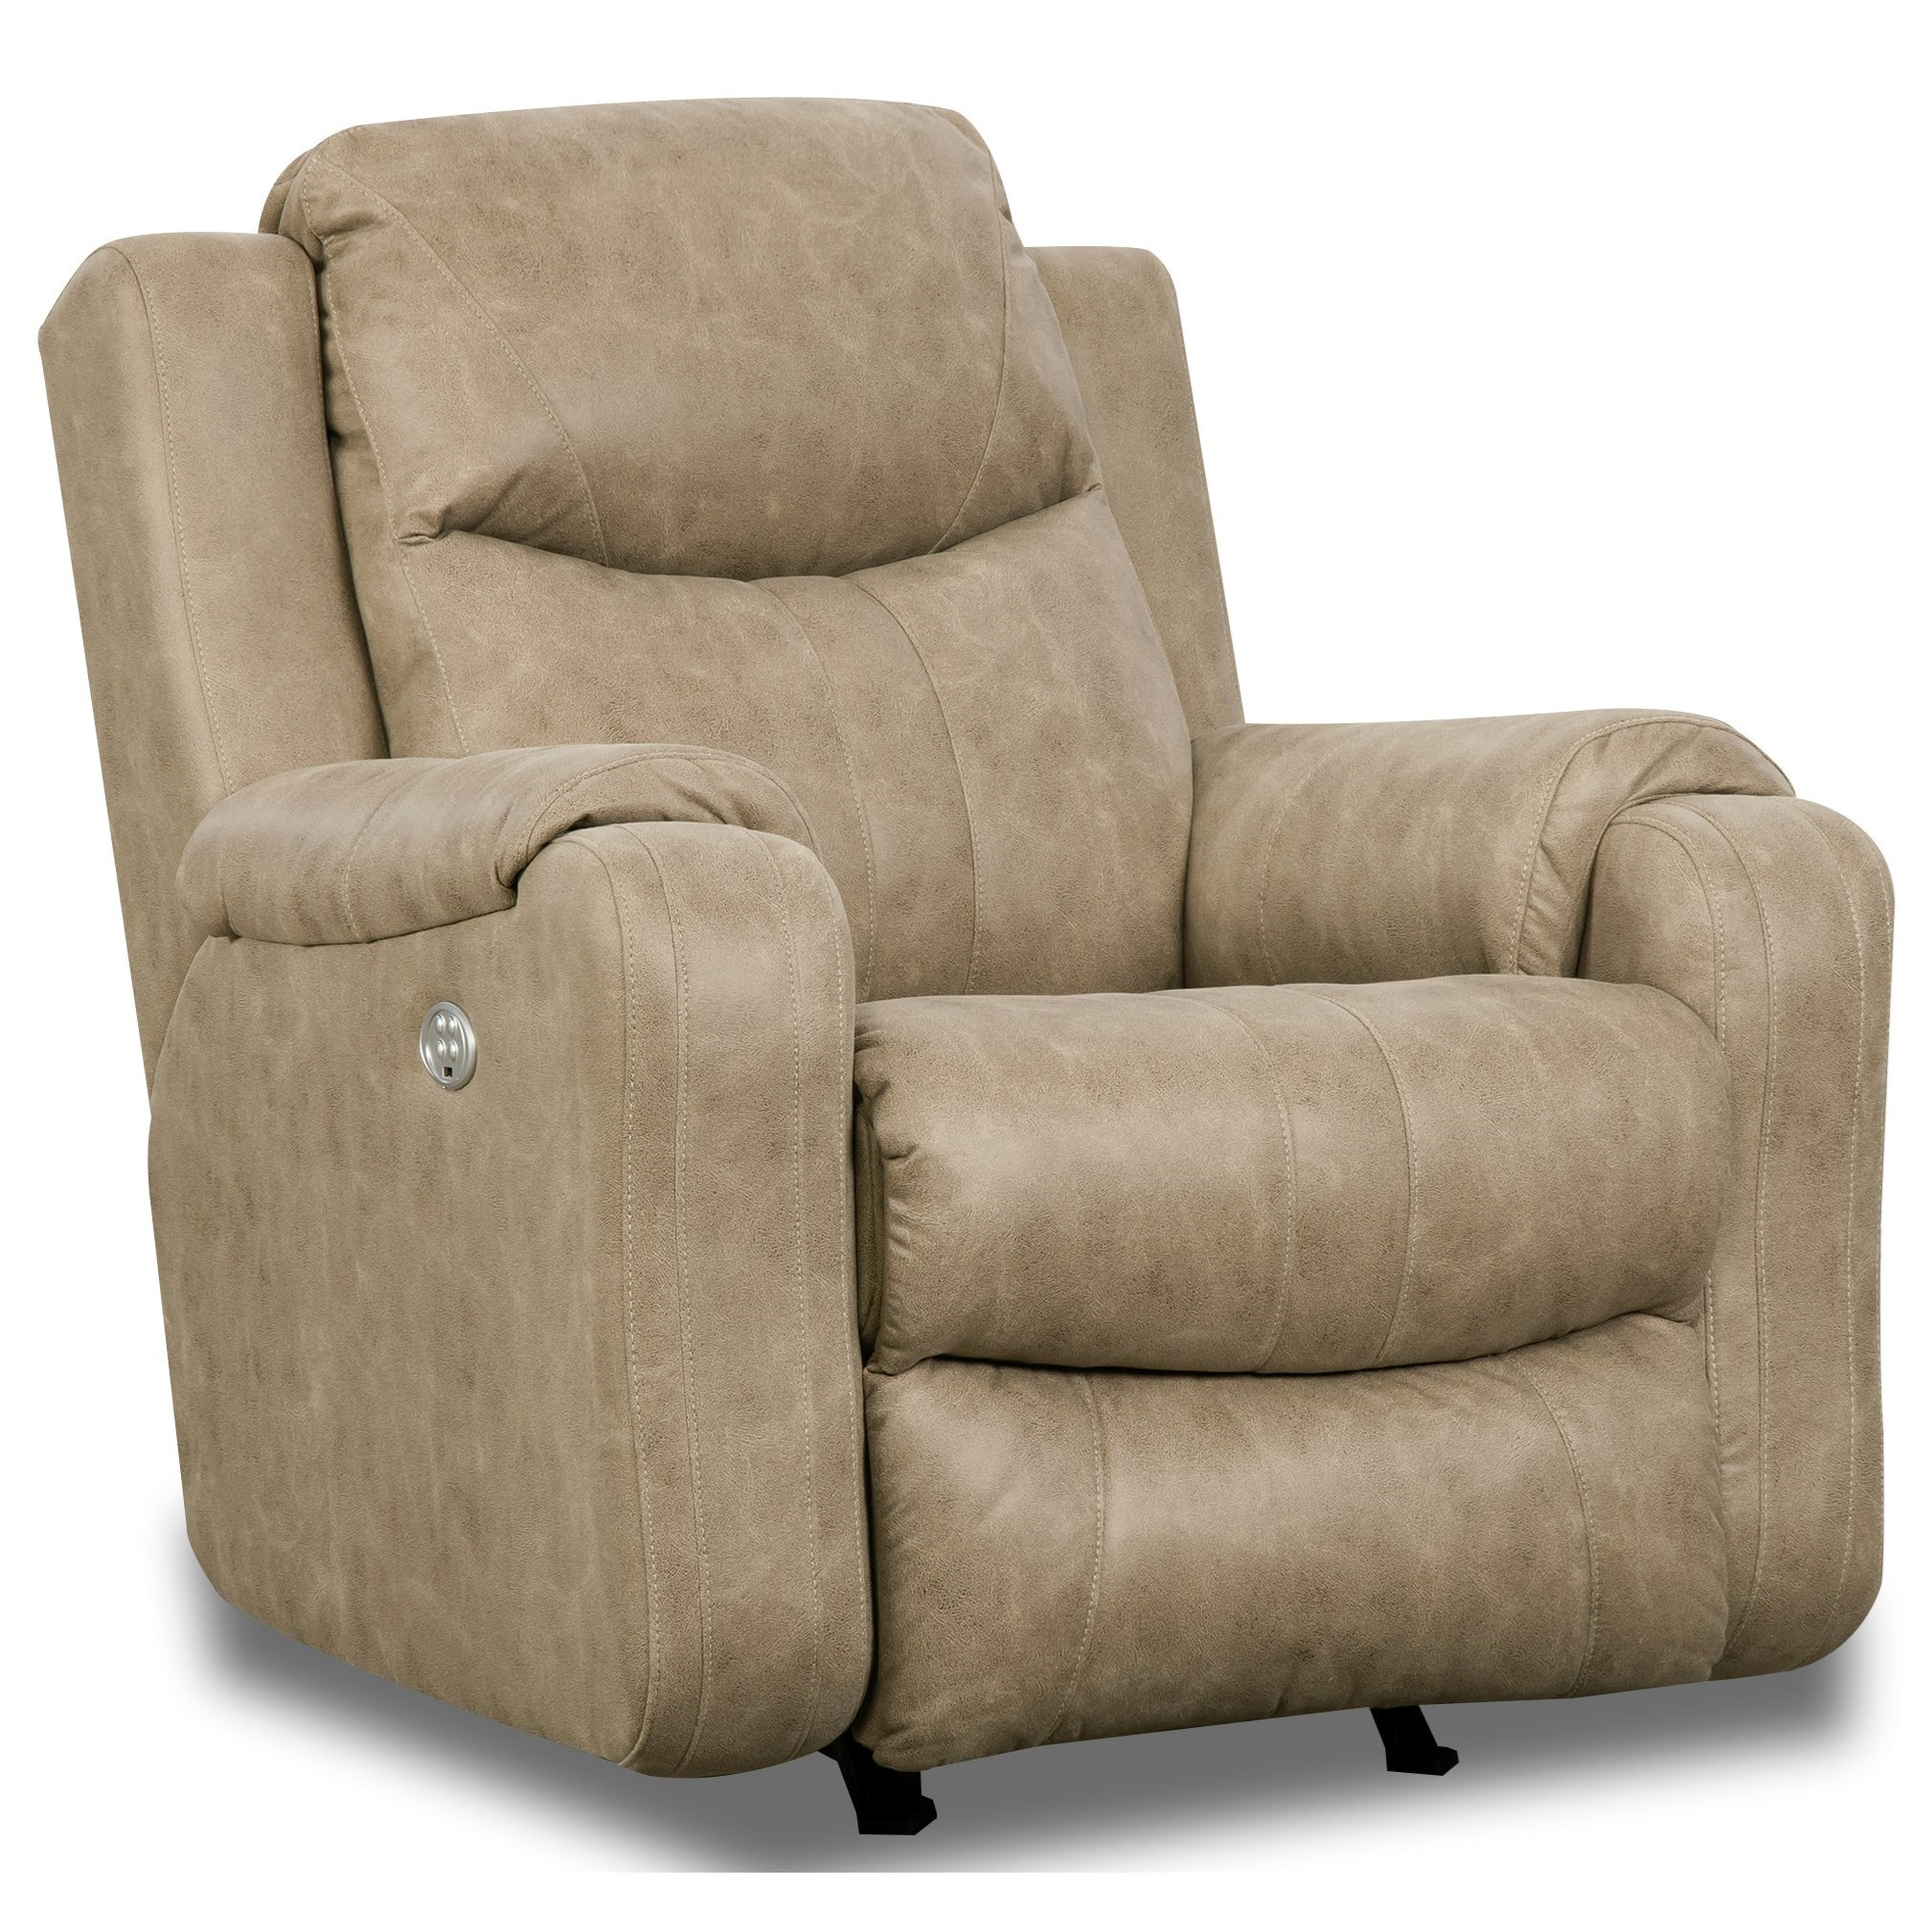 Marvel Rocker Recliner with Power Headrest by Southern Motion at Miller Waldrop Furniture and Decor